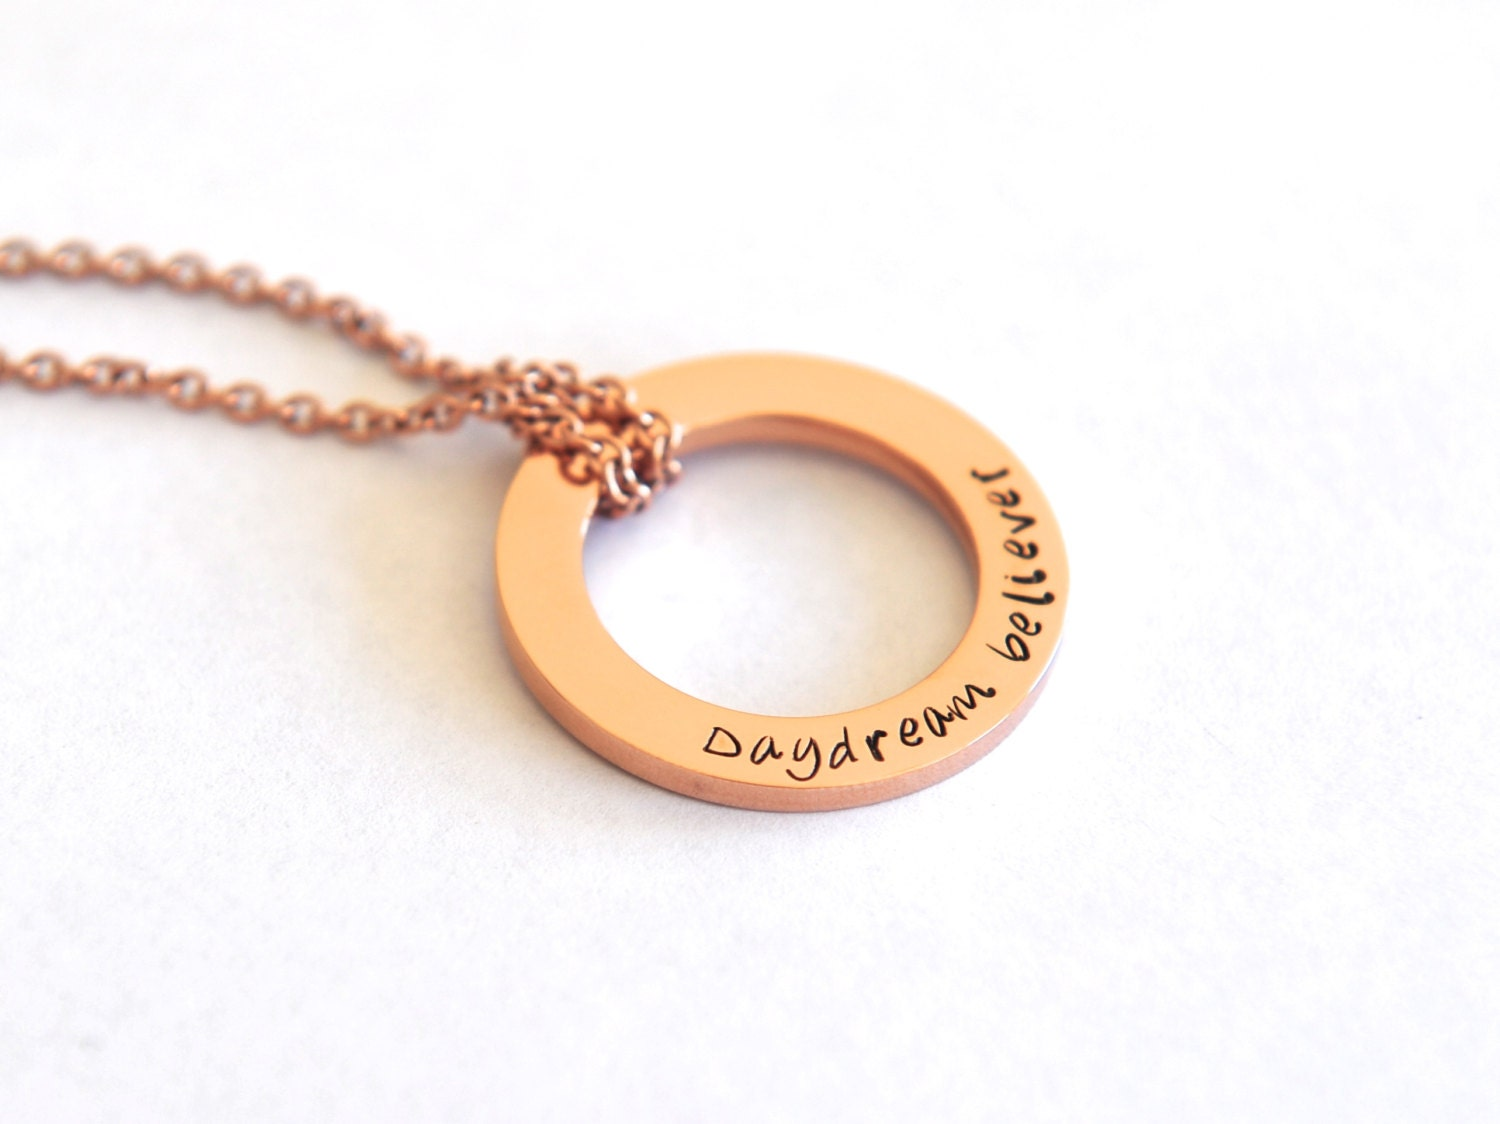 Hand Stamped Inspiration Necklace Inspiring Words Jewelry